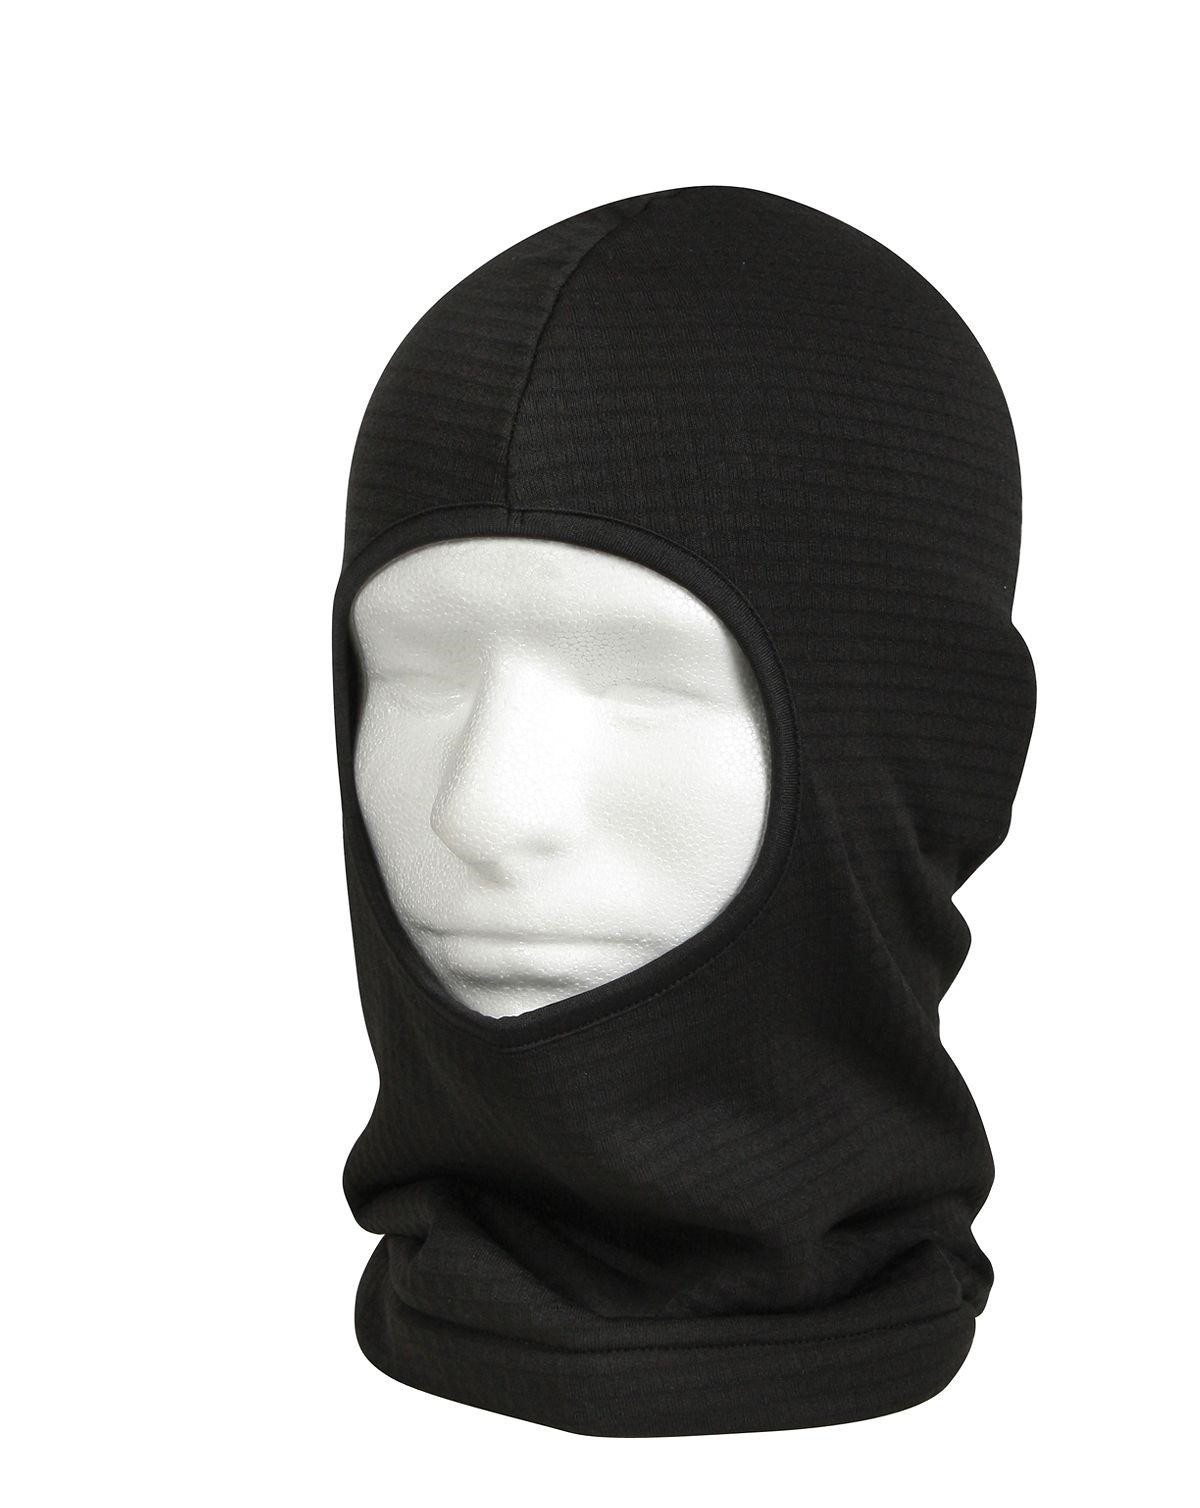 Image of   Rothco Gridfleece Balaclava (Sort, One Size)